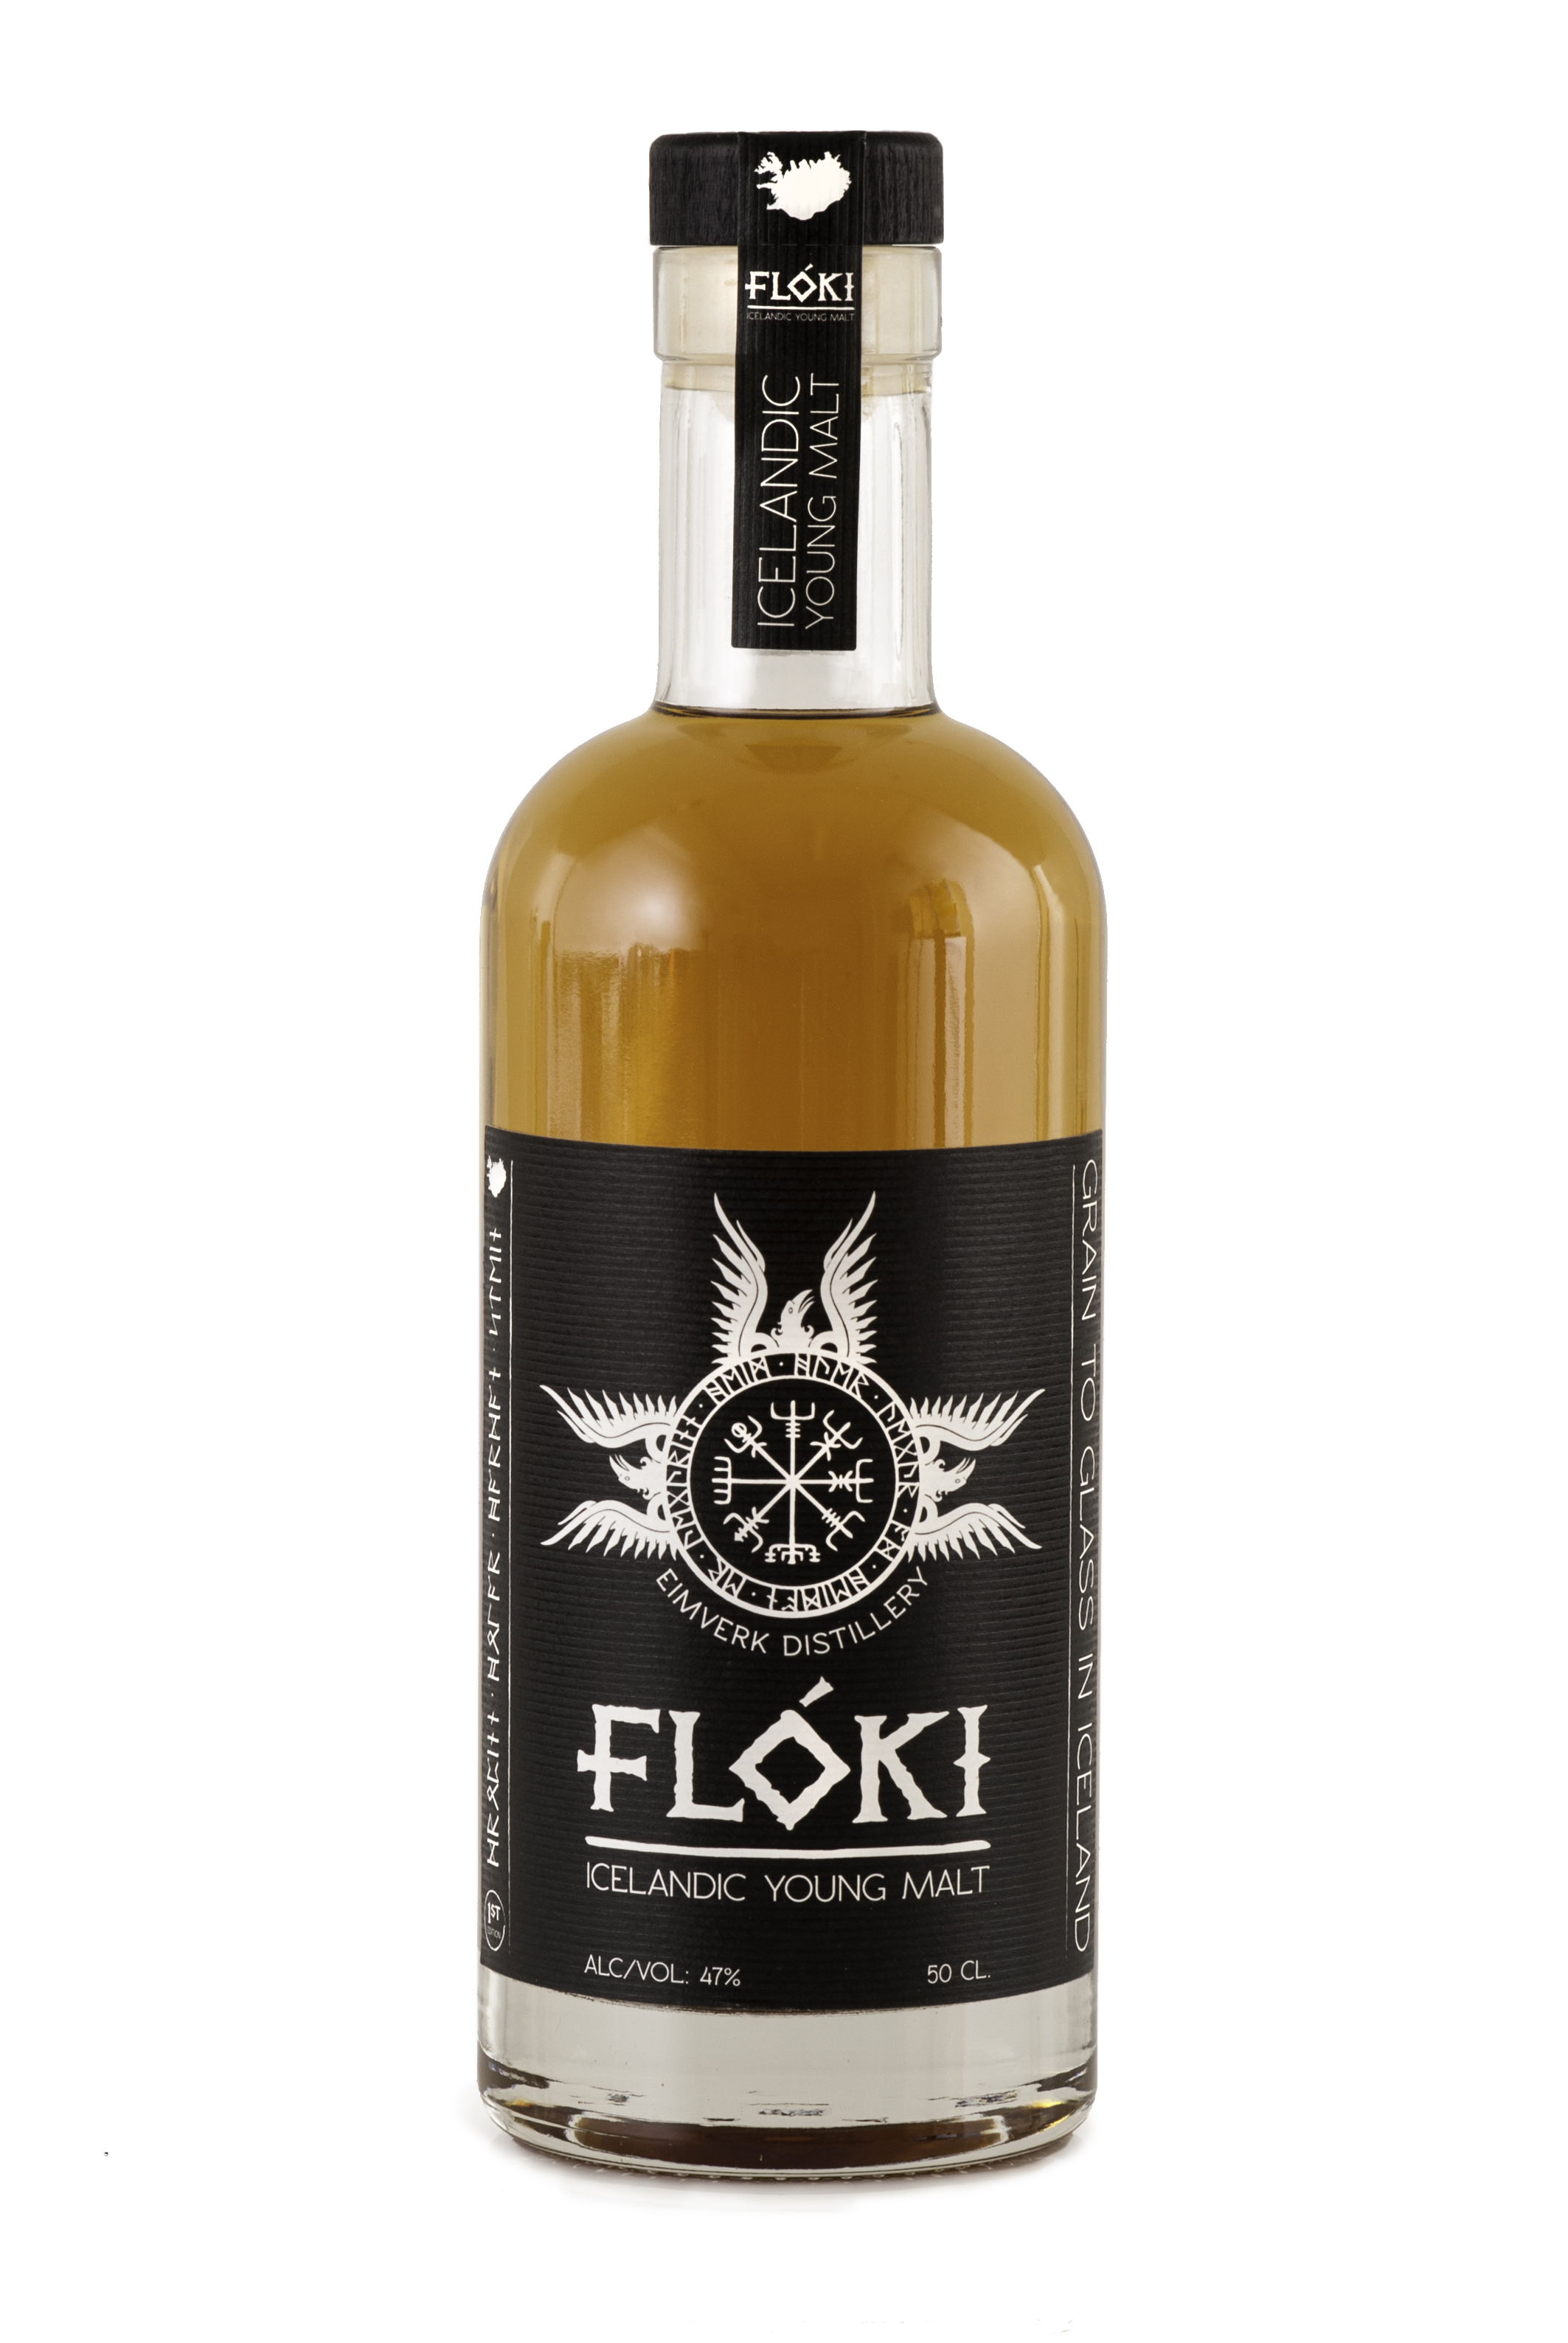 20150107_floki_bottle_500ml_0171-edit.jpg